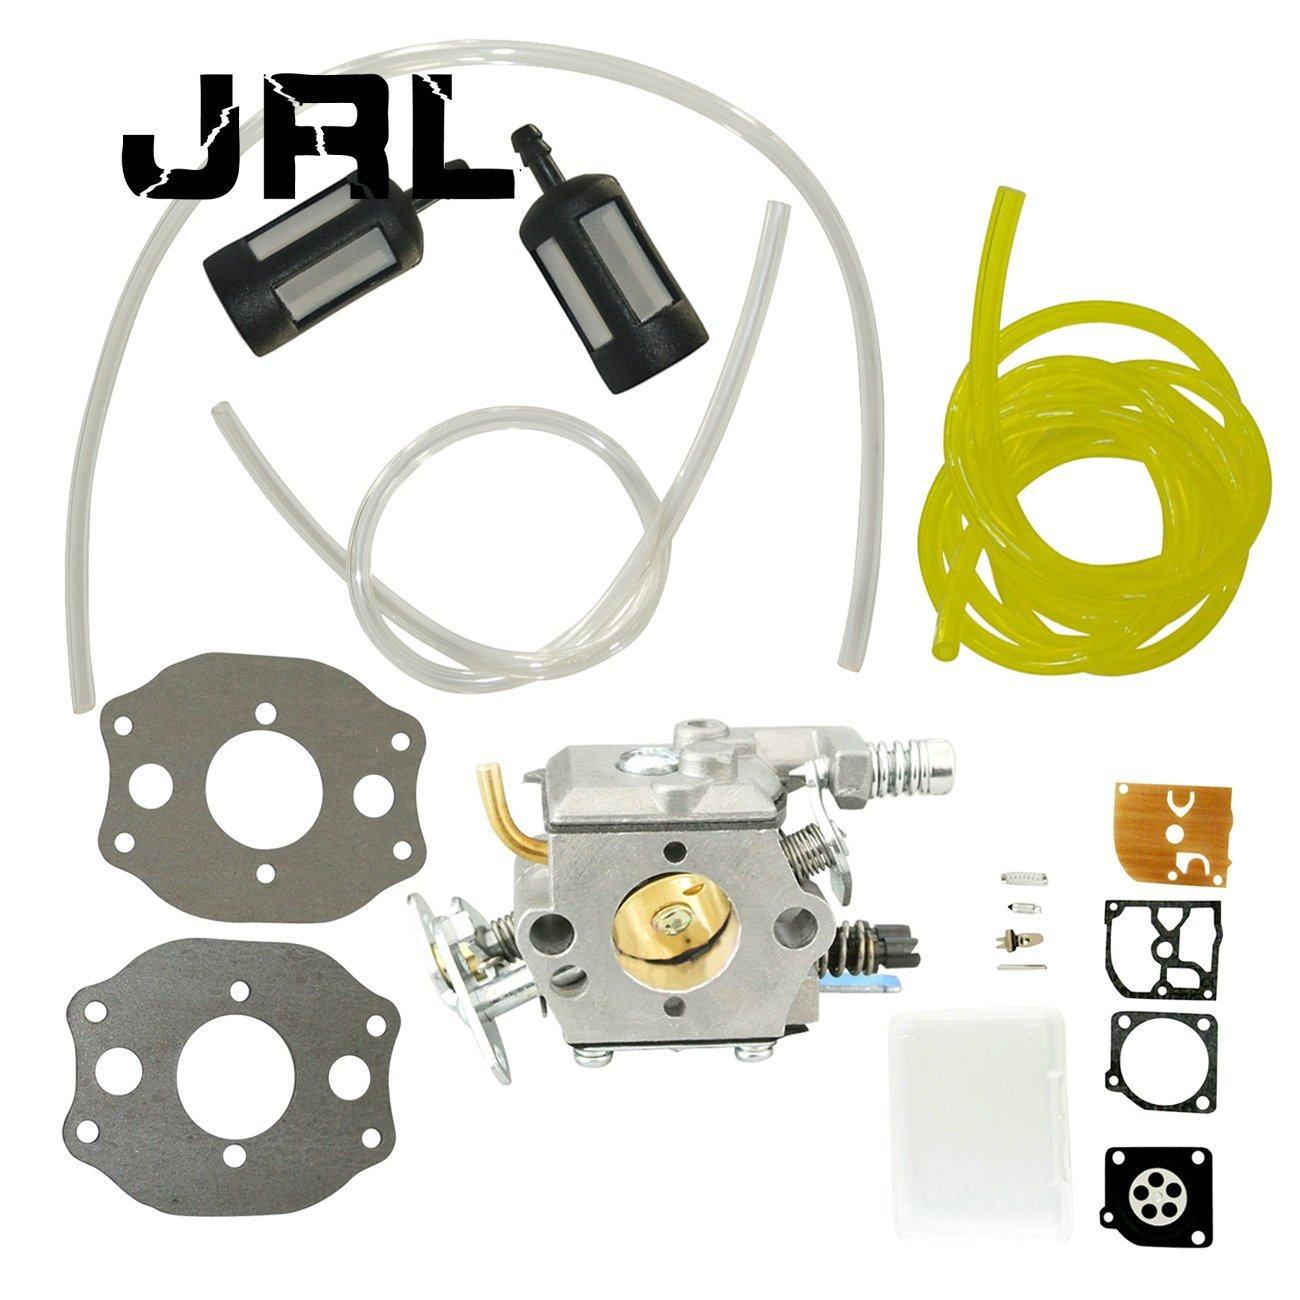 JRL Carburetor With Fuel Line Fuel Filter & Repair Kit Fit Husqvarna 137 Chainsaw